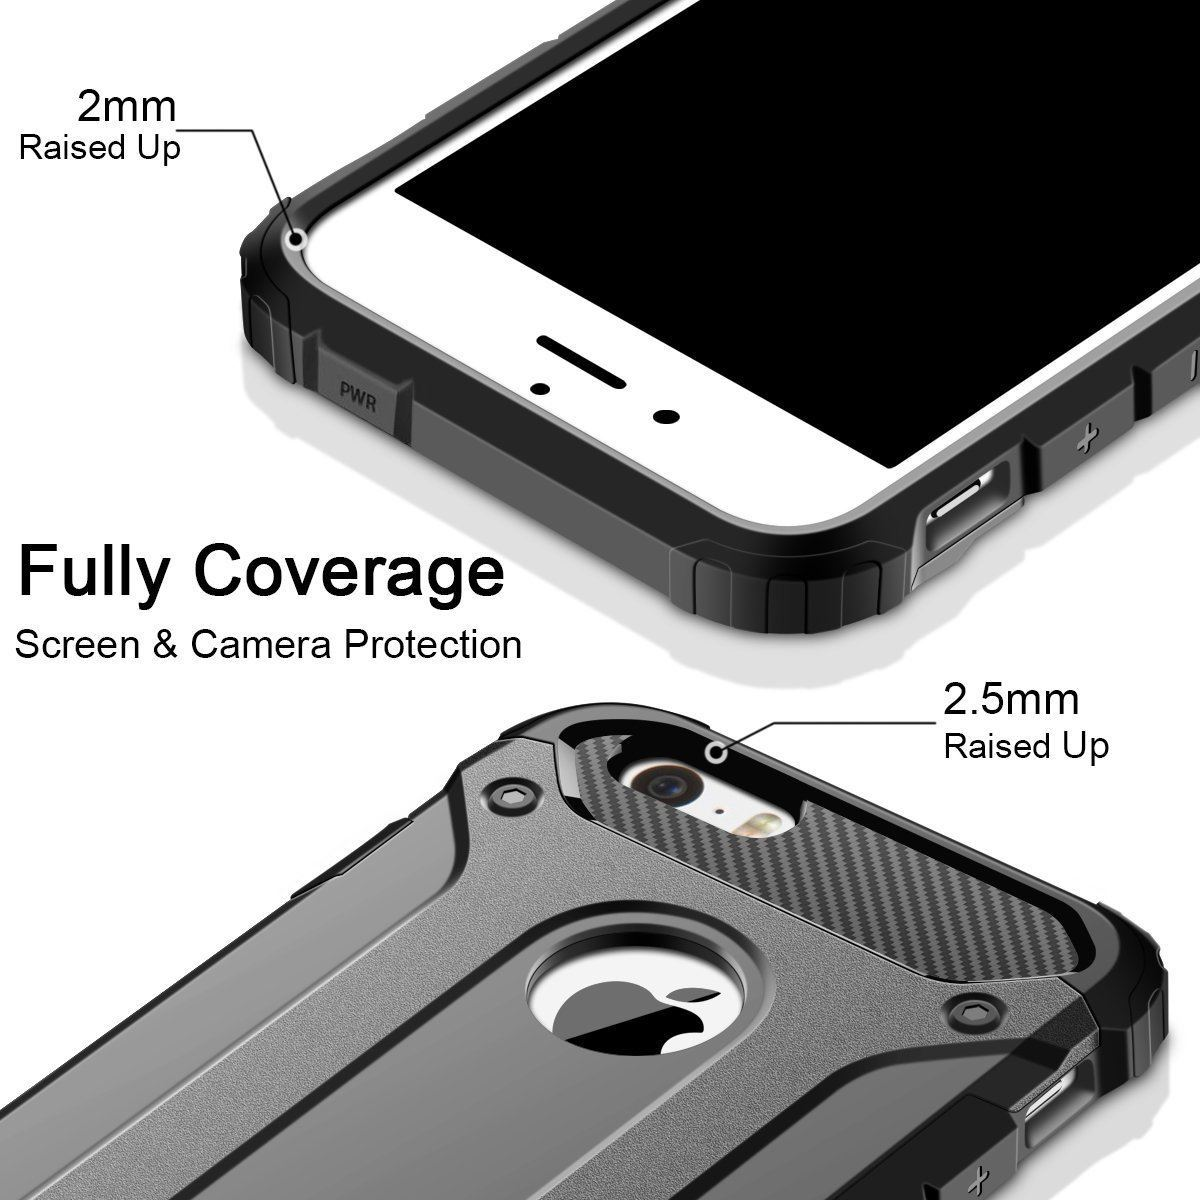 Hybrid-Armor-Shockproof-Rugged-Bumper-Case-For-Apple-iPhone-10-X-8-7-Plus-6s-5s miniature 70